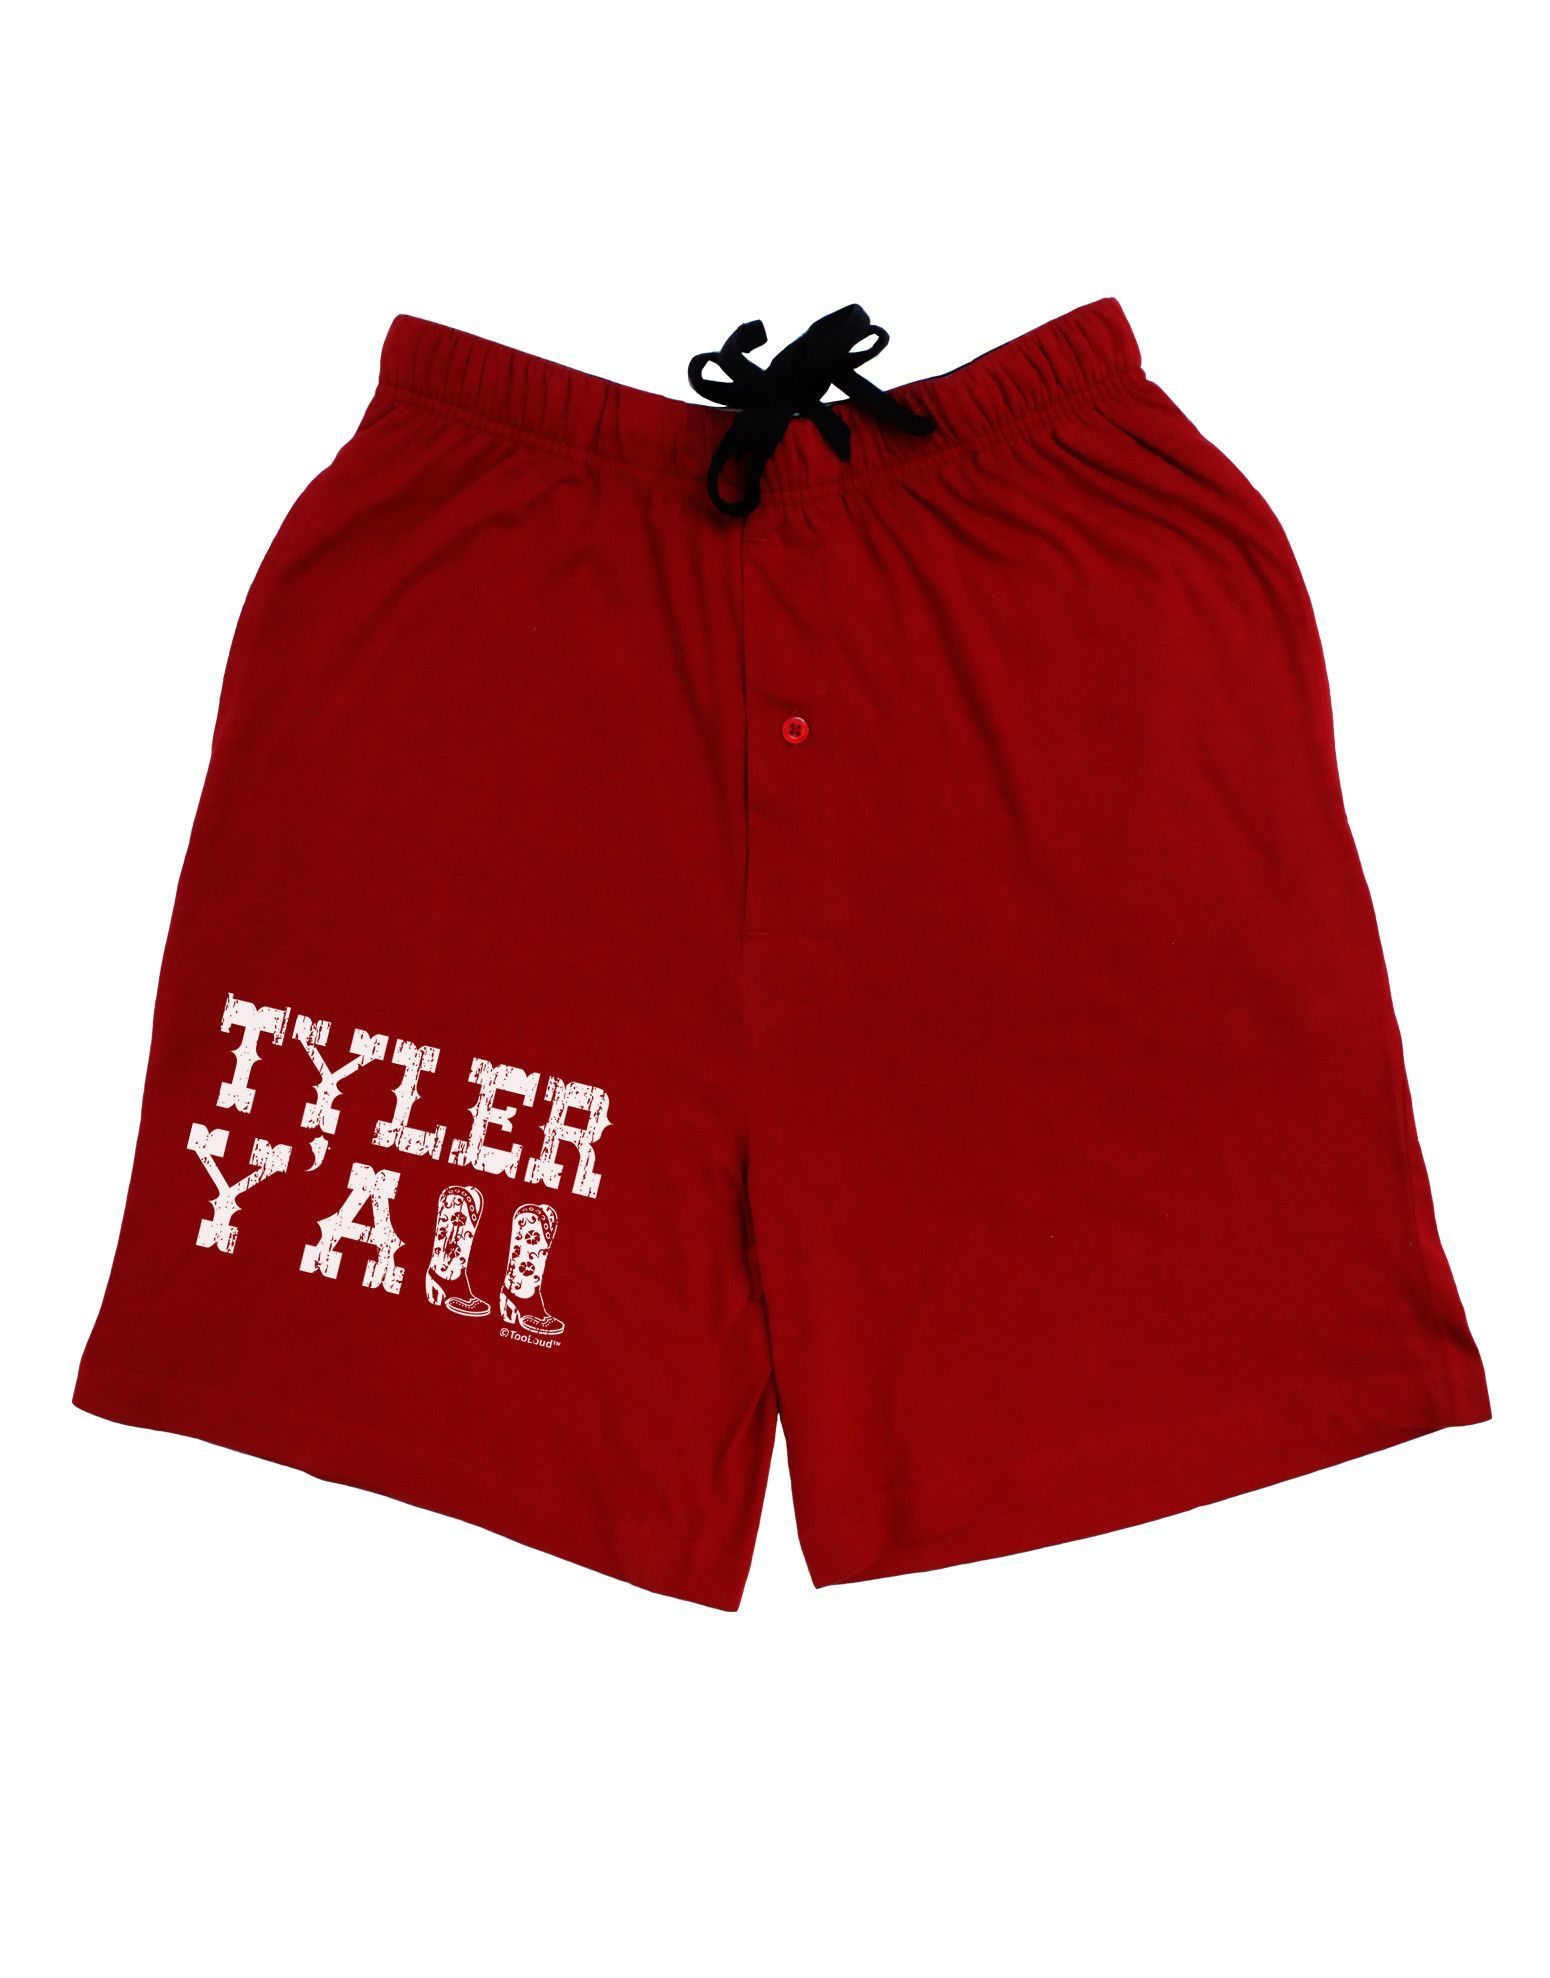 TooLoud Tyler Y'all - Southwestern Style Adult Lounge Shorts